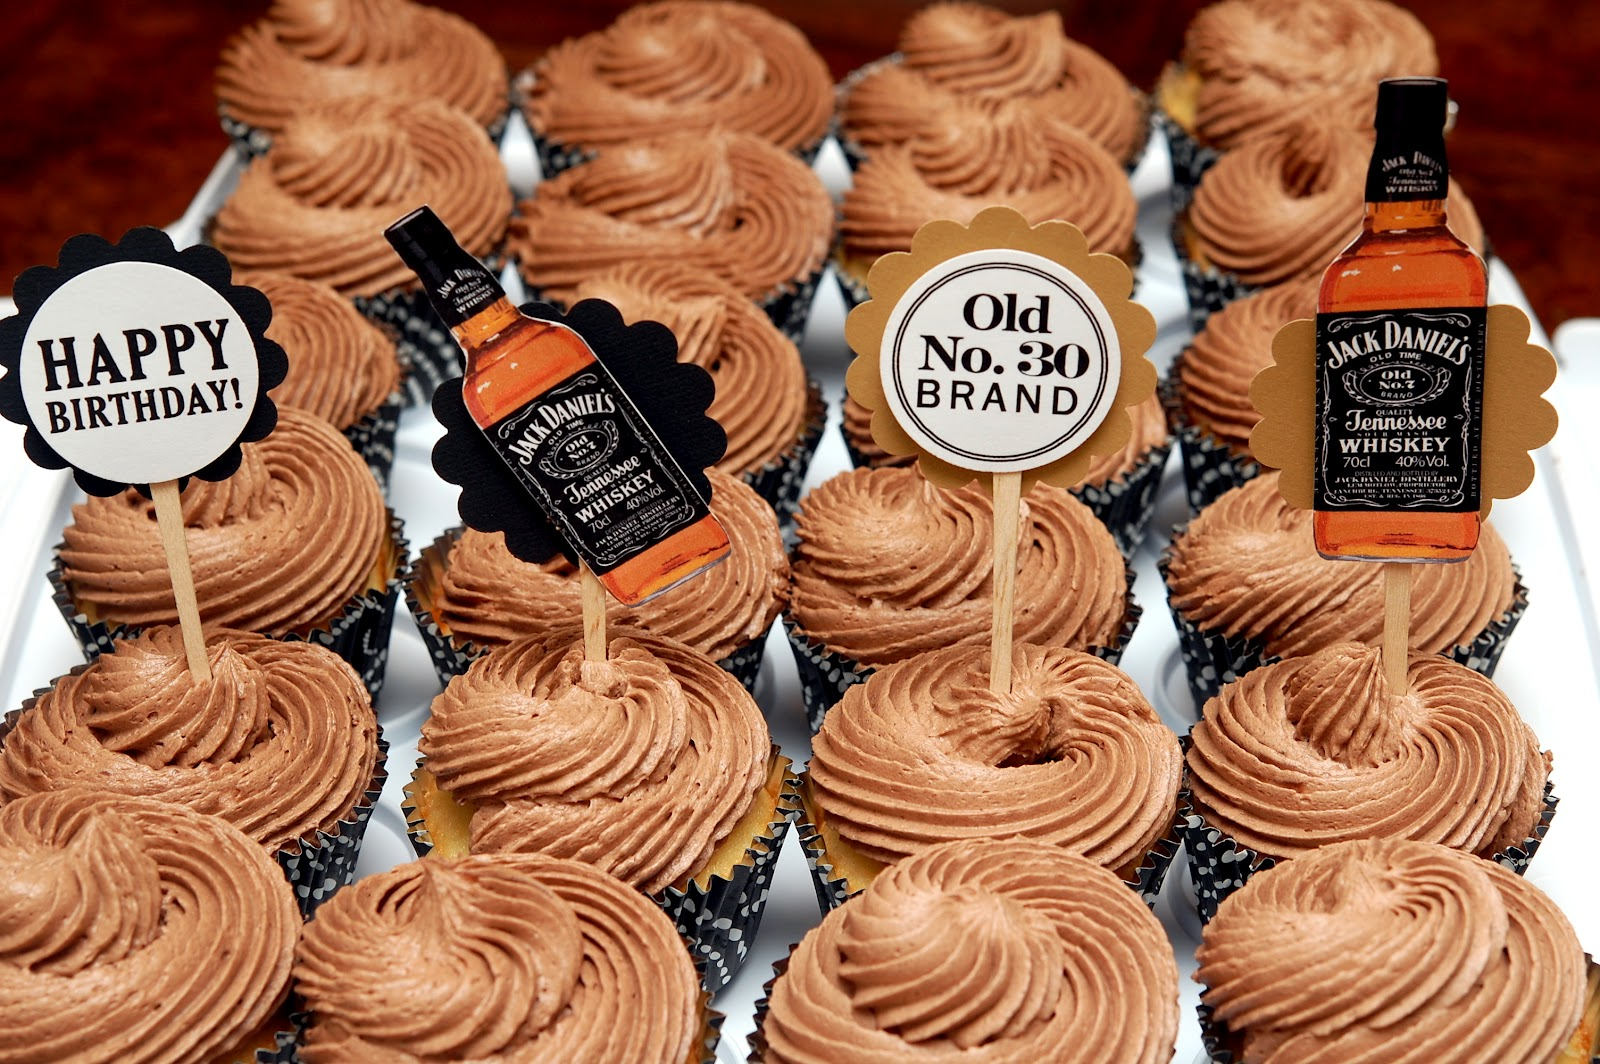 JACK DANIELS CUPCAKES FOR THE GROWN UPS Hugs and Cookies XOXO